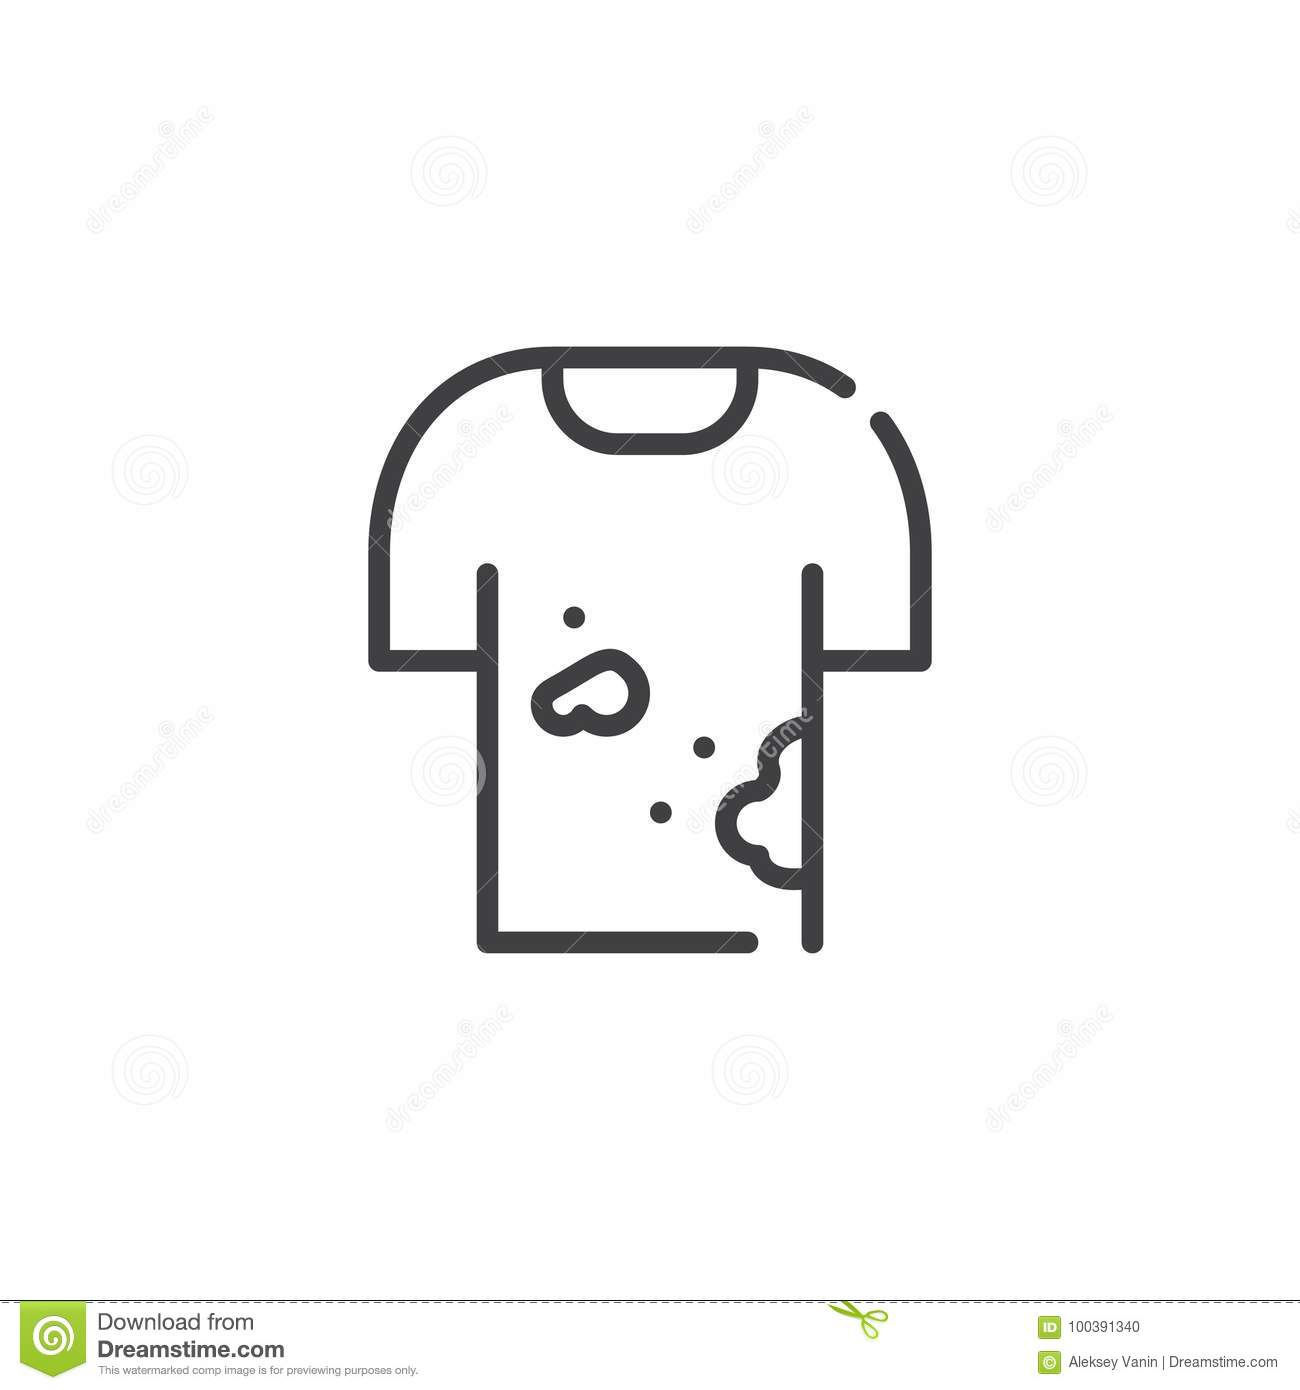 Dirty Shirt Line Icon Stock Vector Illustration Of Drop 100391340